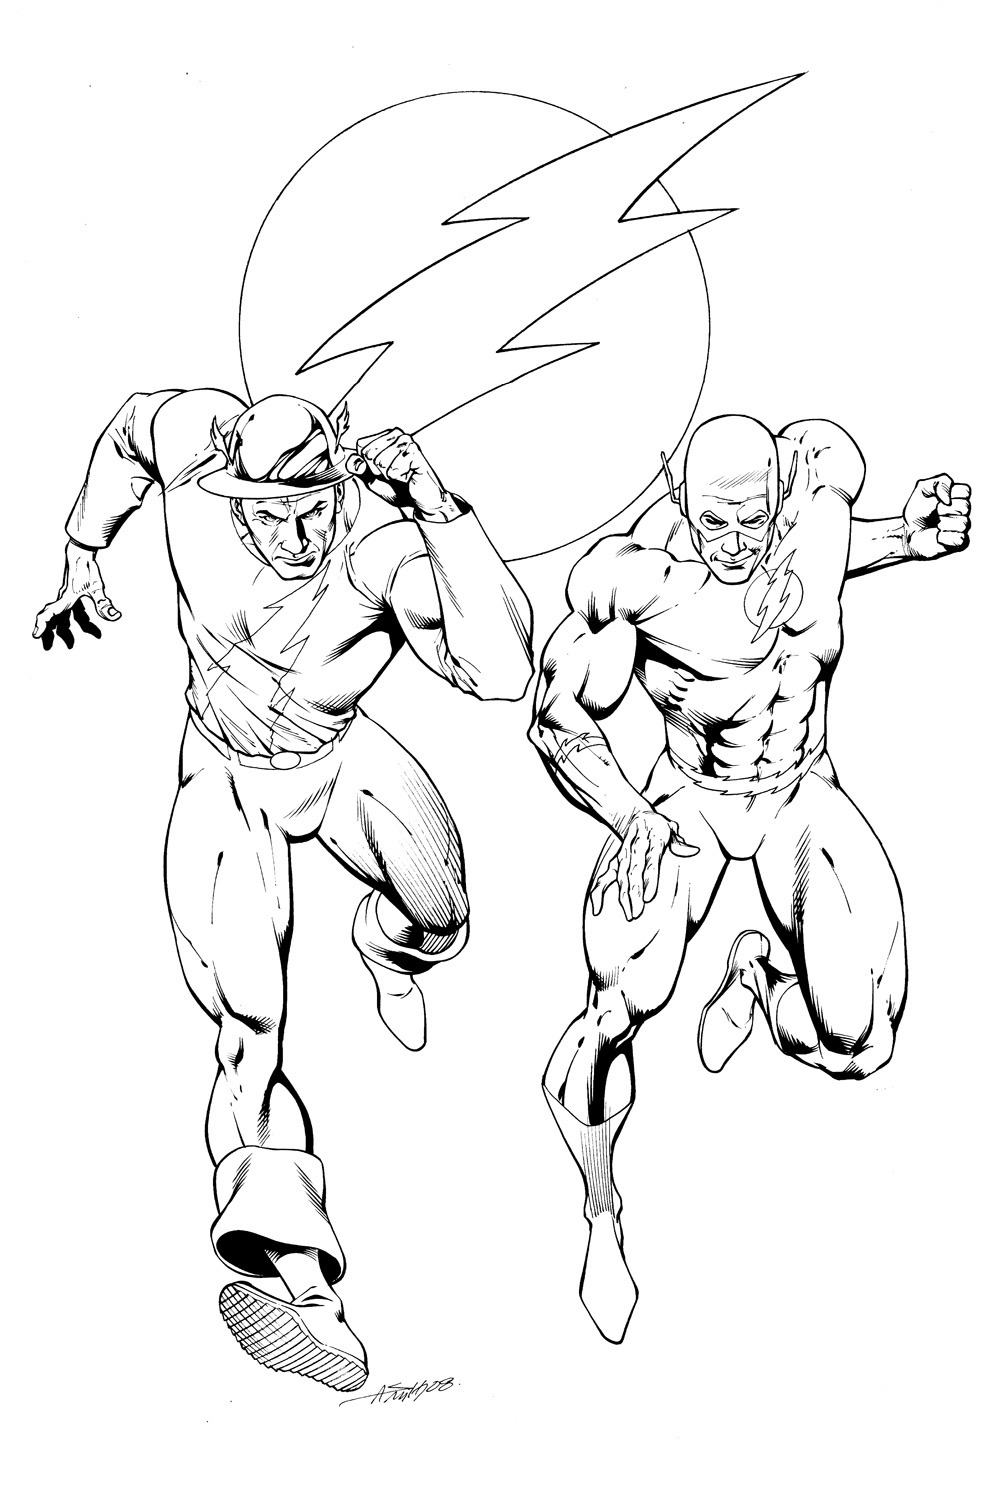 the flash coloring pages free printable at getdrawings